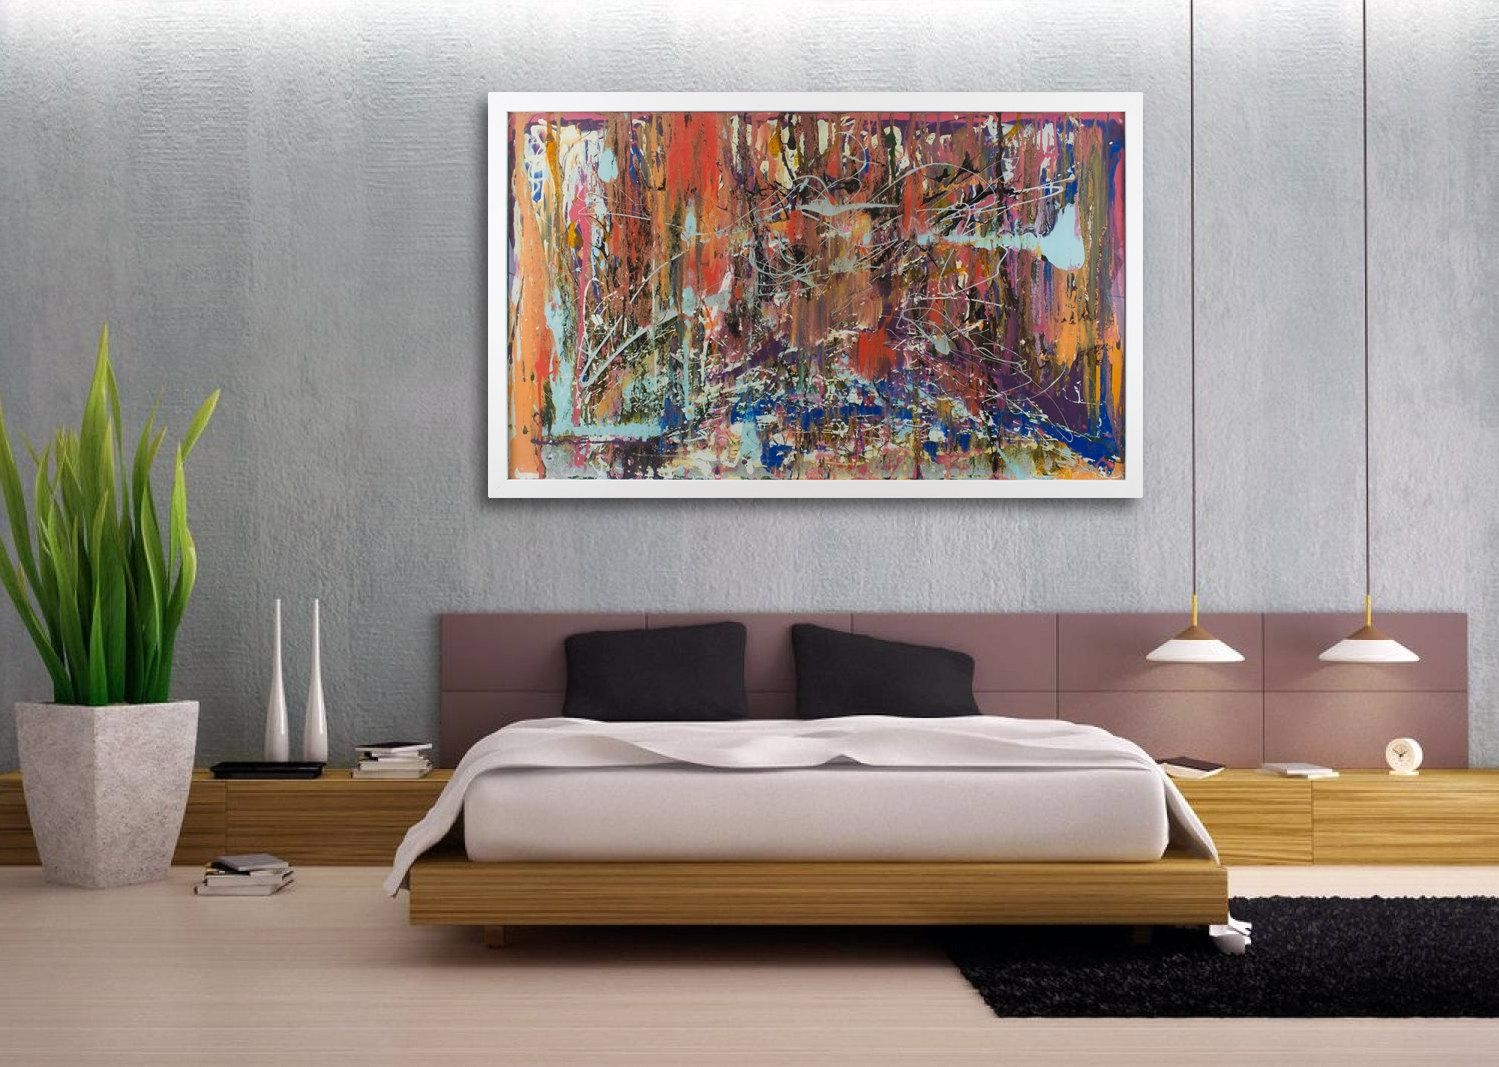 Extra Large Wall Art | Roselawnlutheran Intended For Large Inexpensive Wall Art (Image 12 of 20)